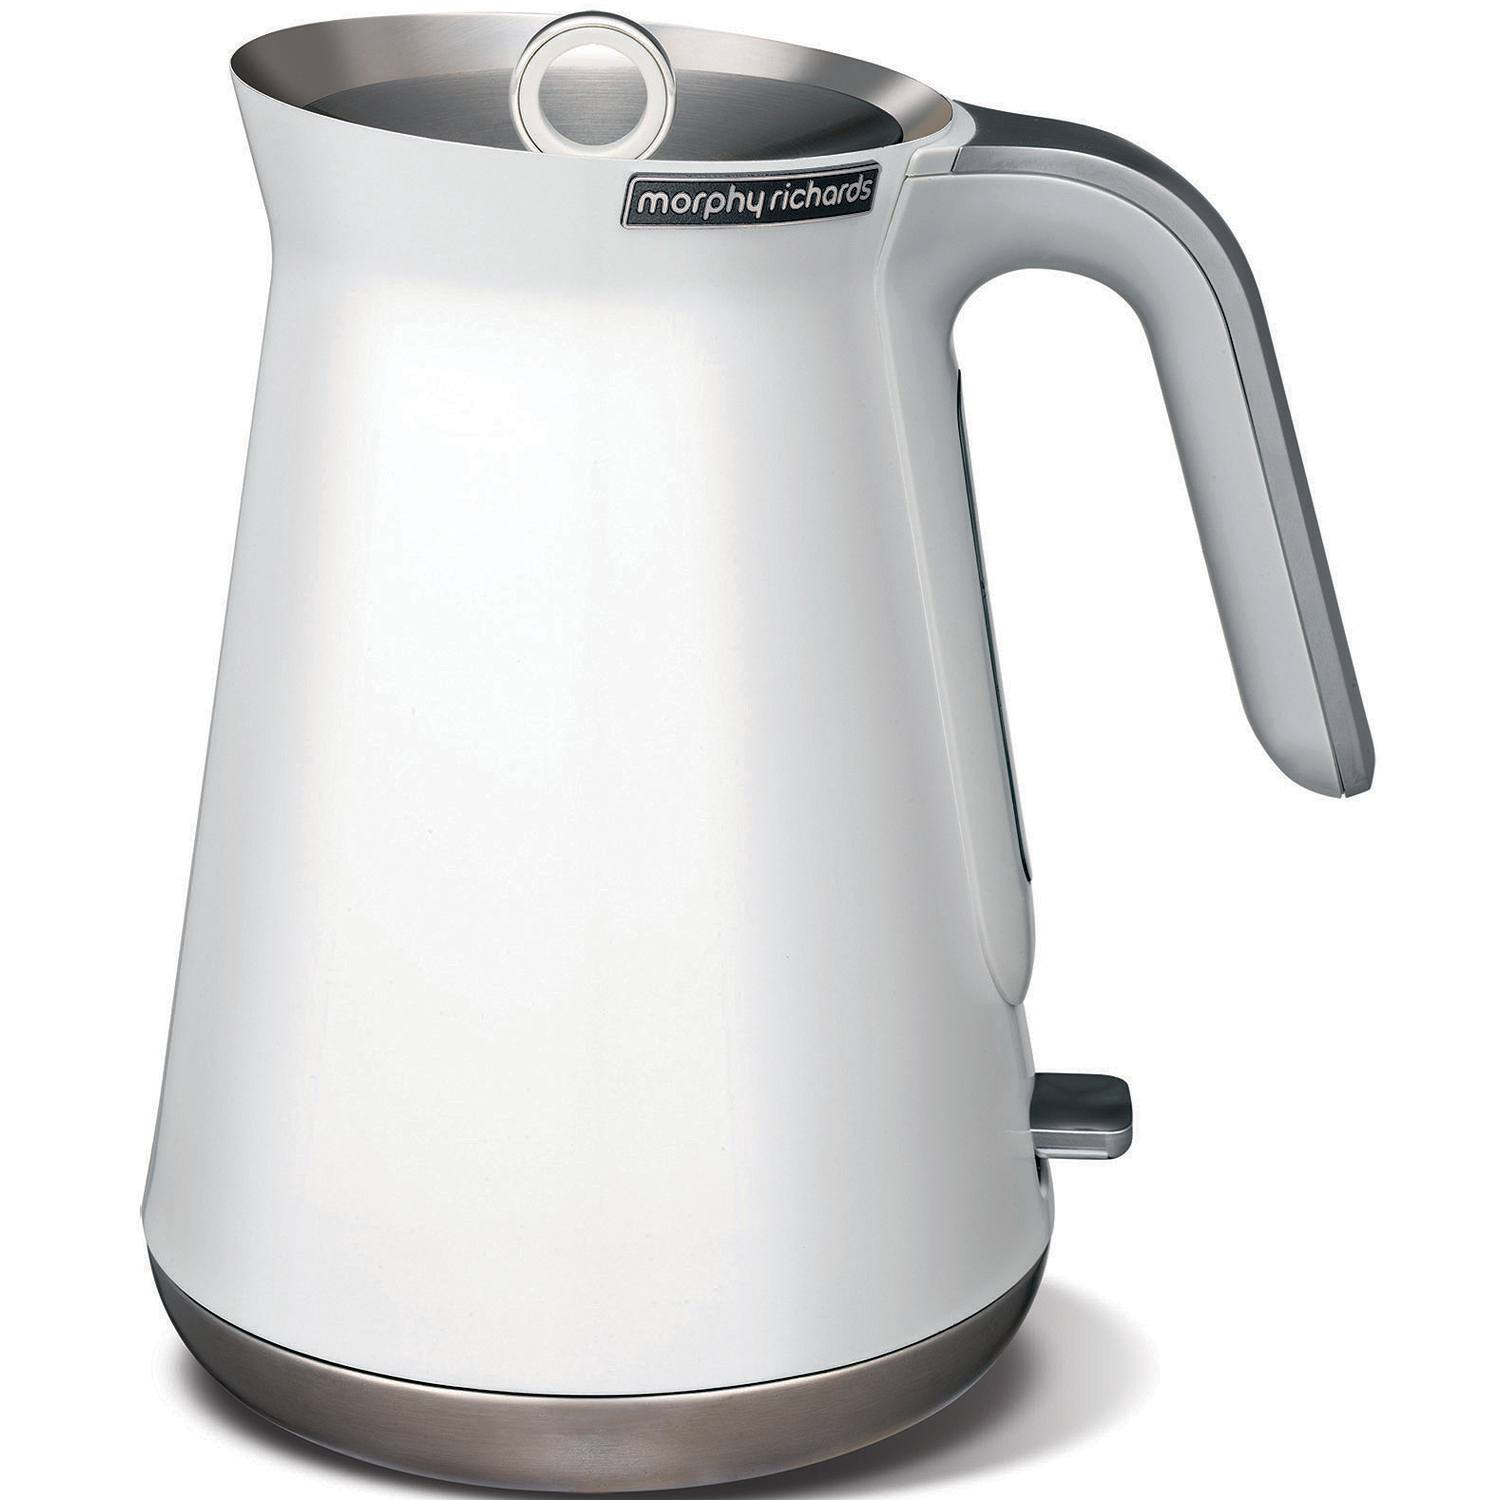 Morphy-Richards-100003-1-5-Litres-3KW-Rapid-Boil-Aspect-Jug-Kettle-in-White